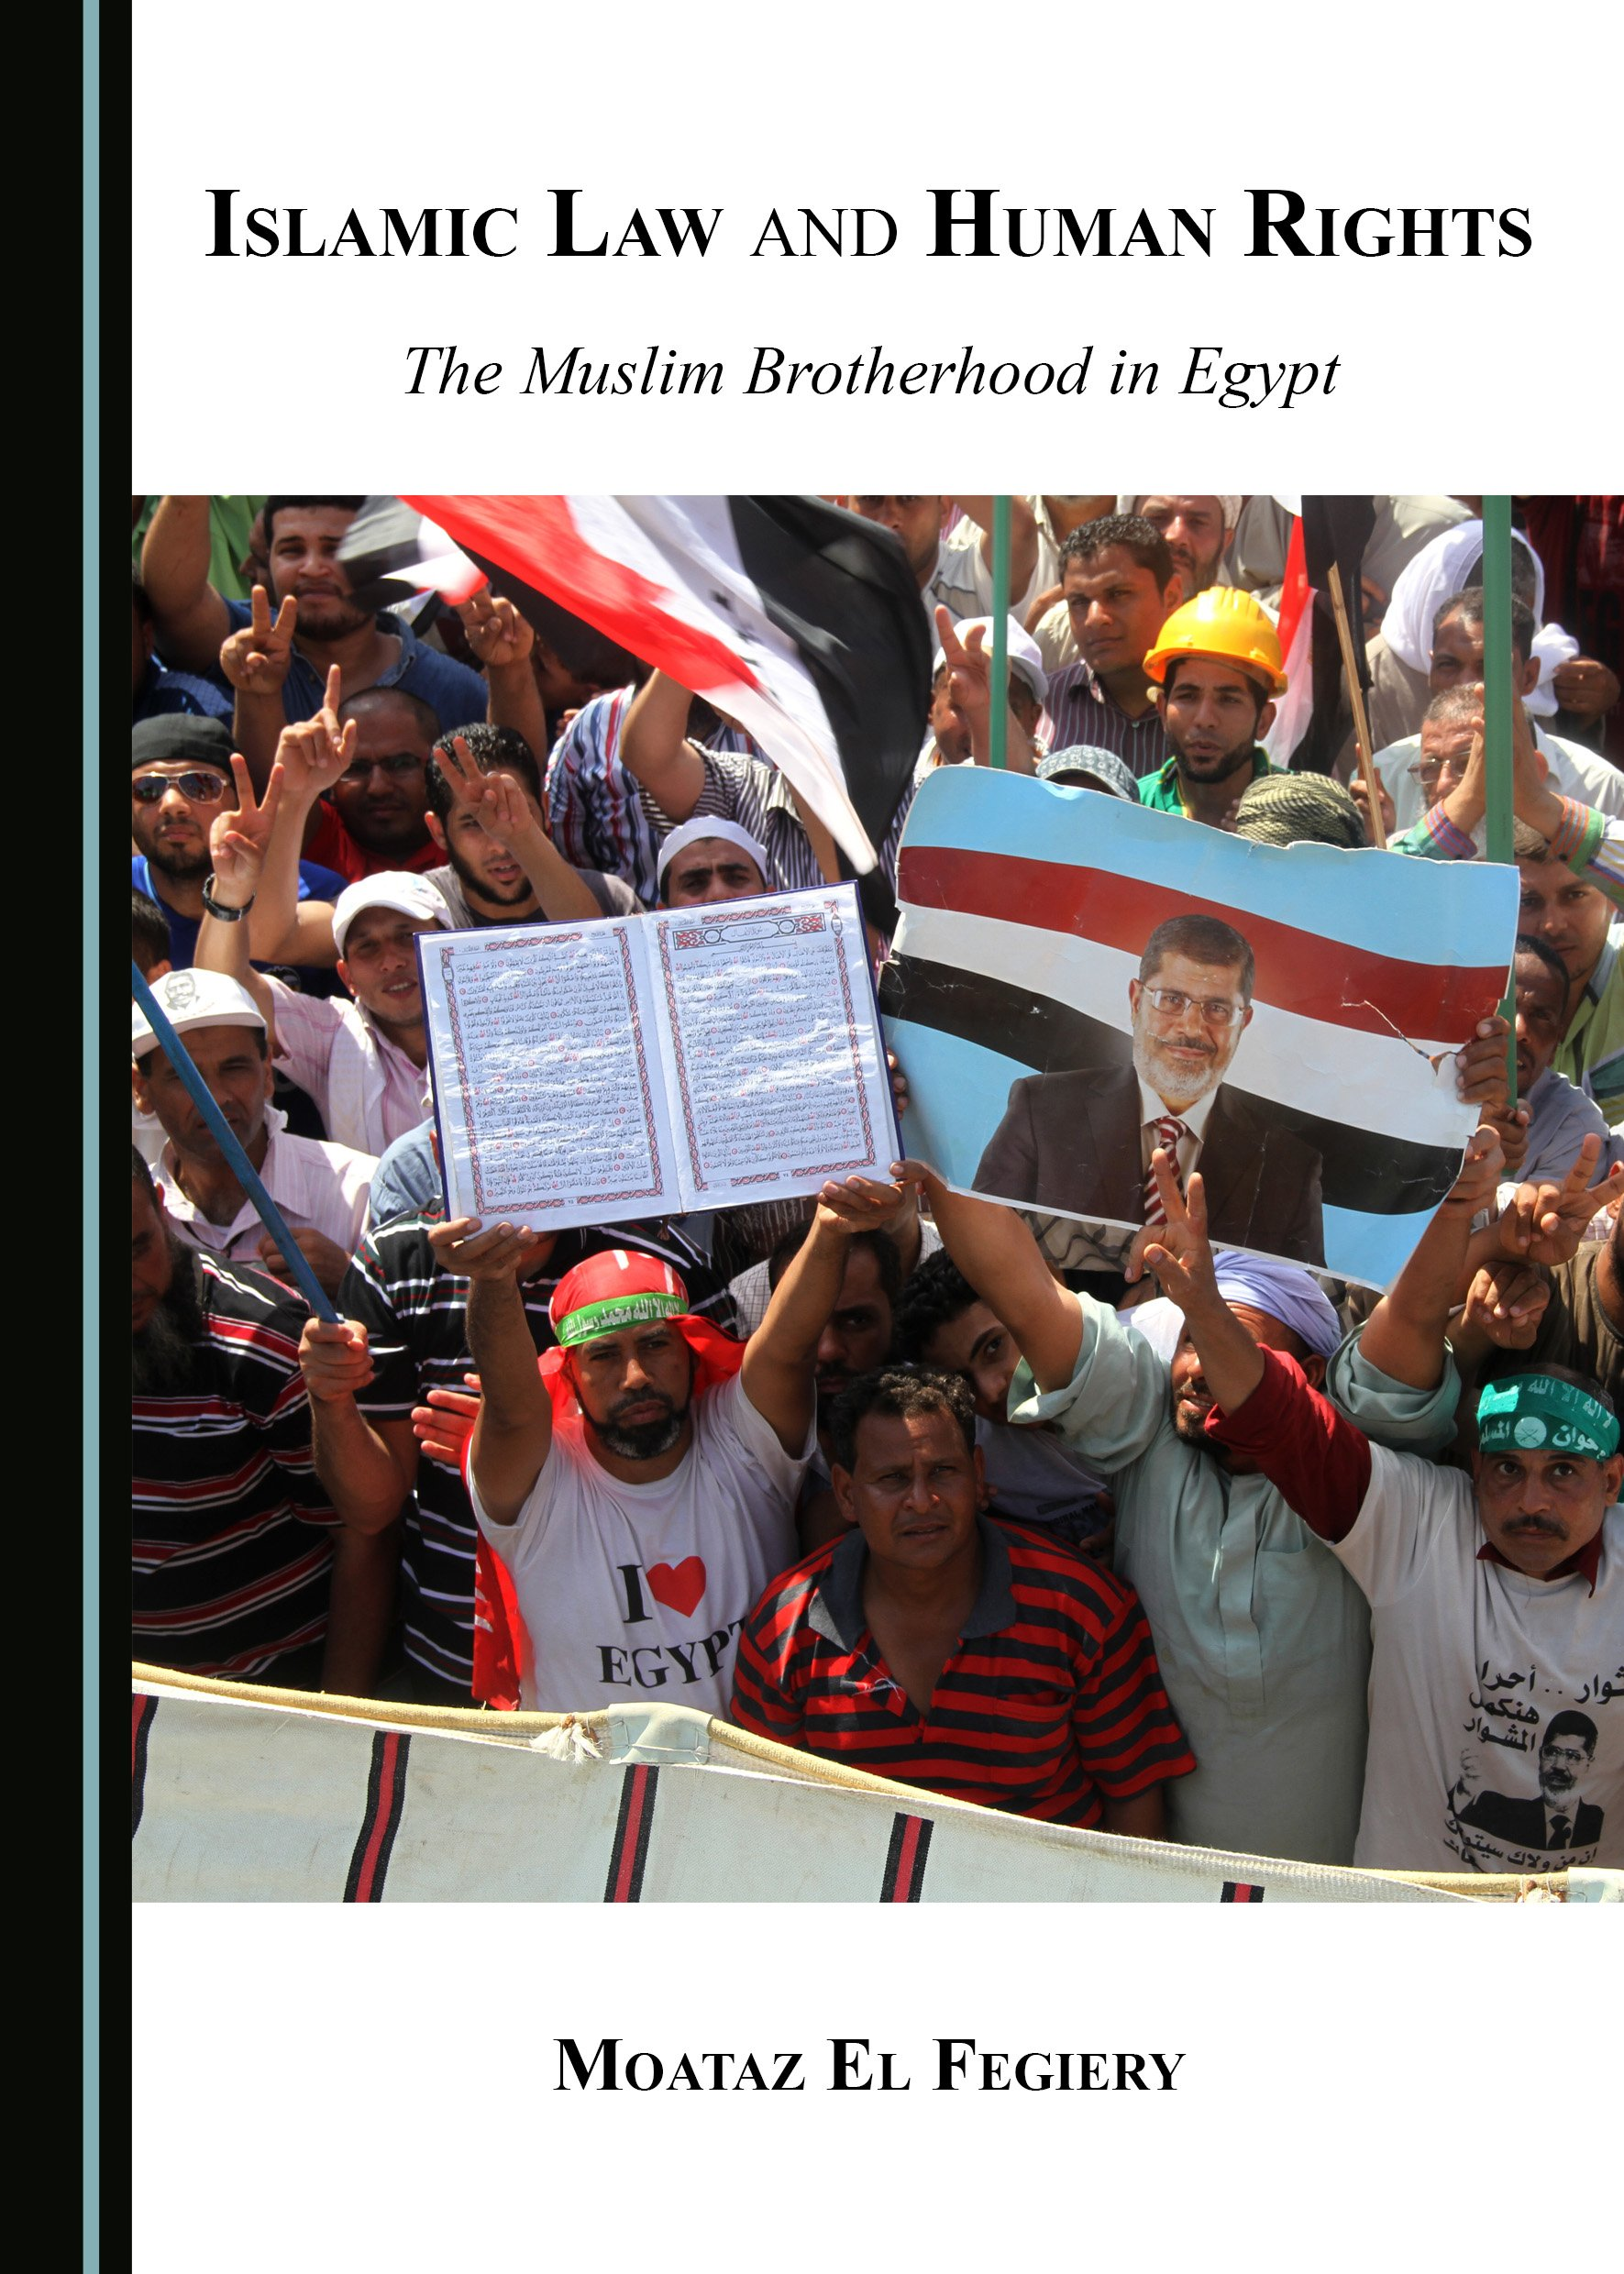 Islamic Law and Human Rights: The Muslim Brotherhood in Egypt